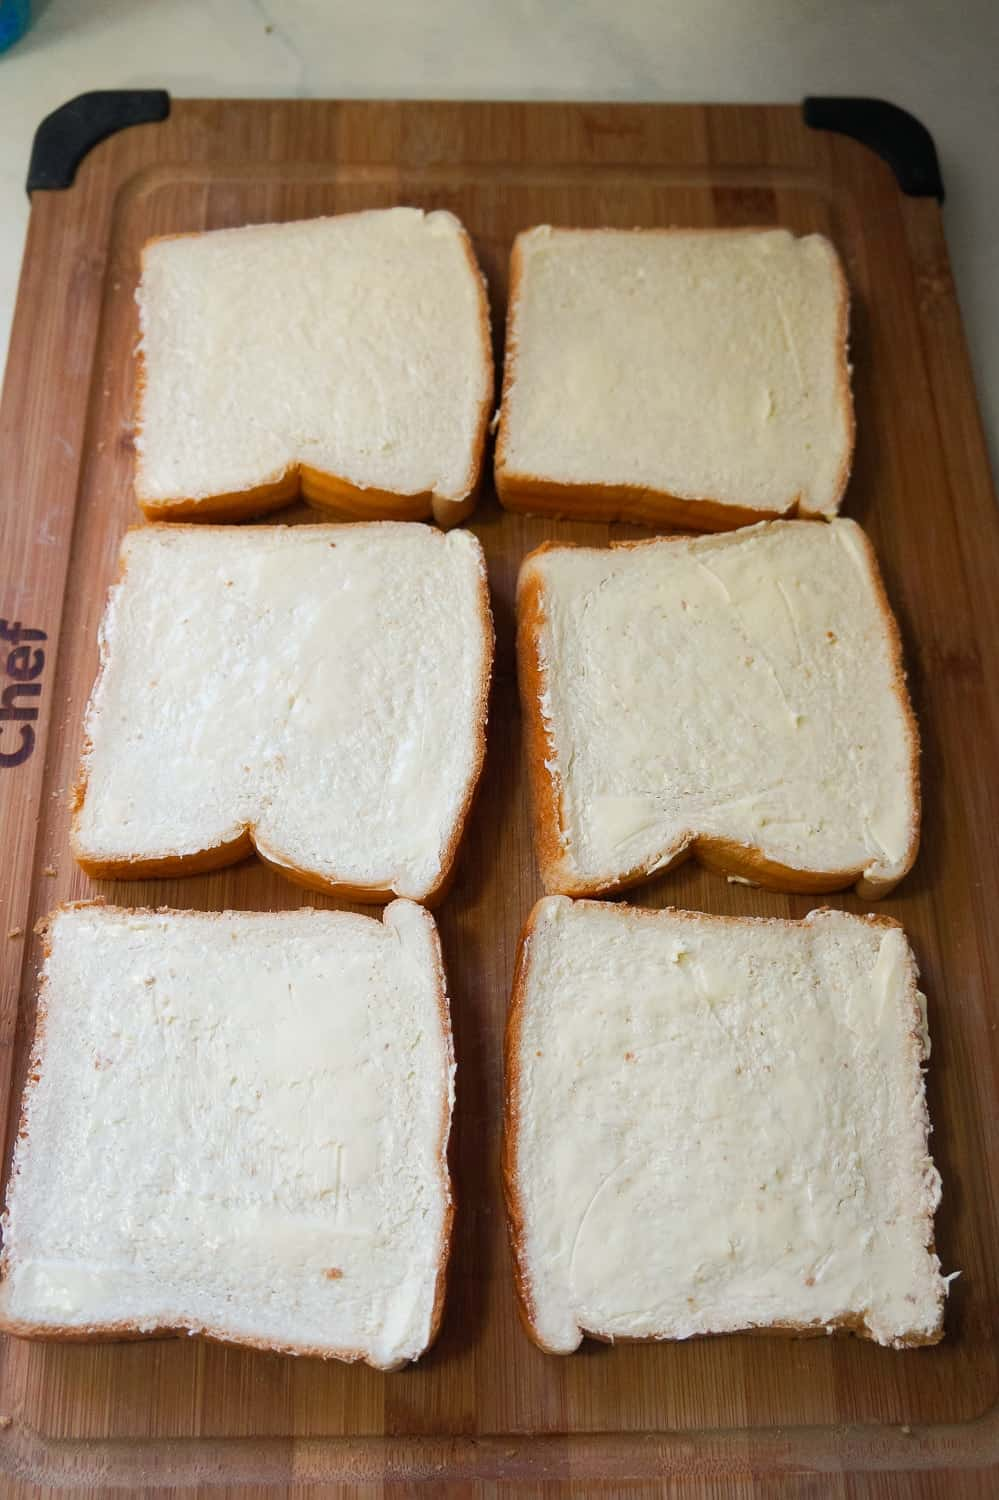 slices of bread on a cutting board